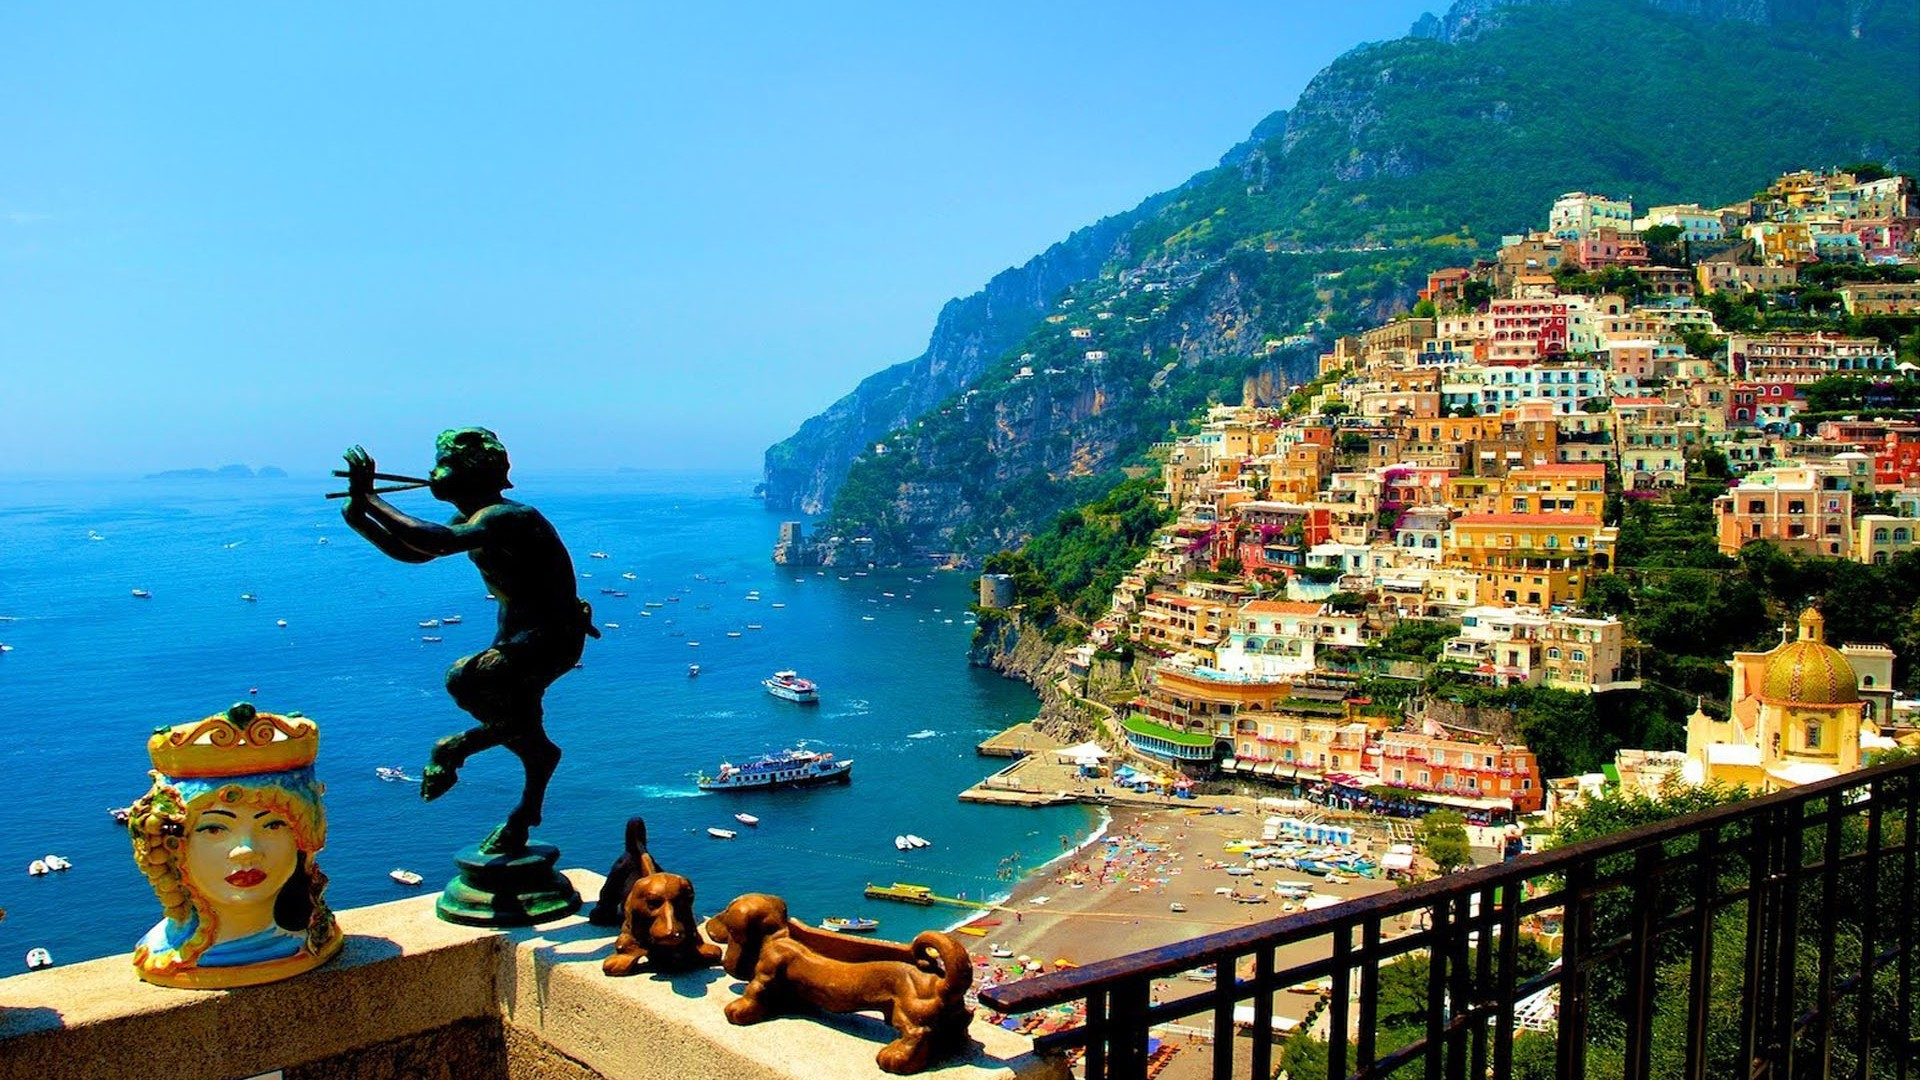 Amalfi-Coast-Cooking-Vacation-in-Italy-Cooking-in-Paradise-on-the-Amalfi-Coast-1920×1080